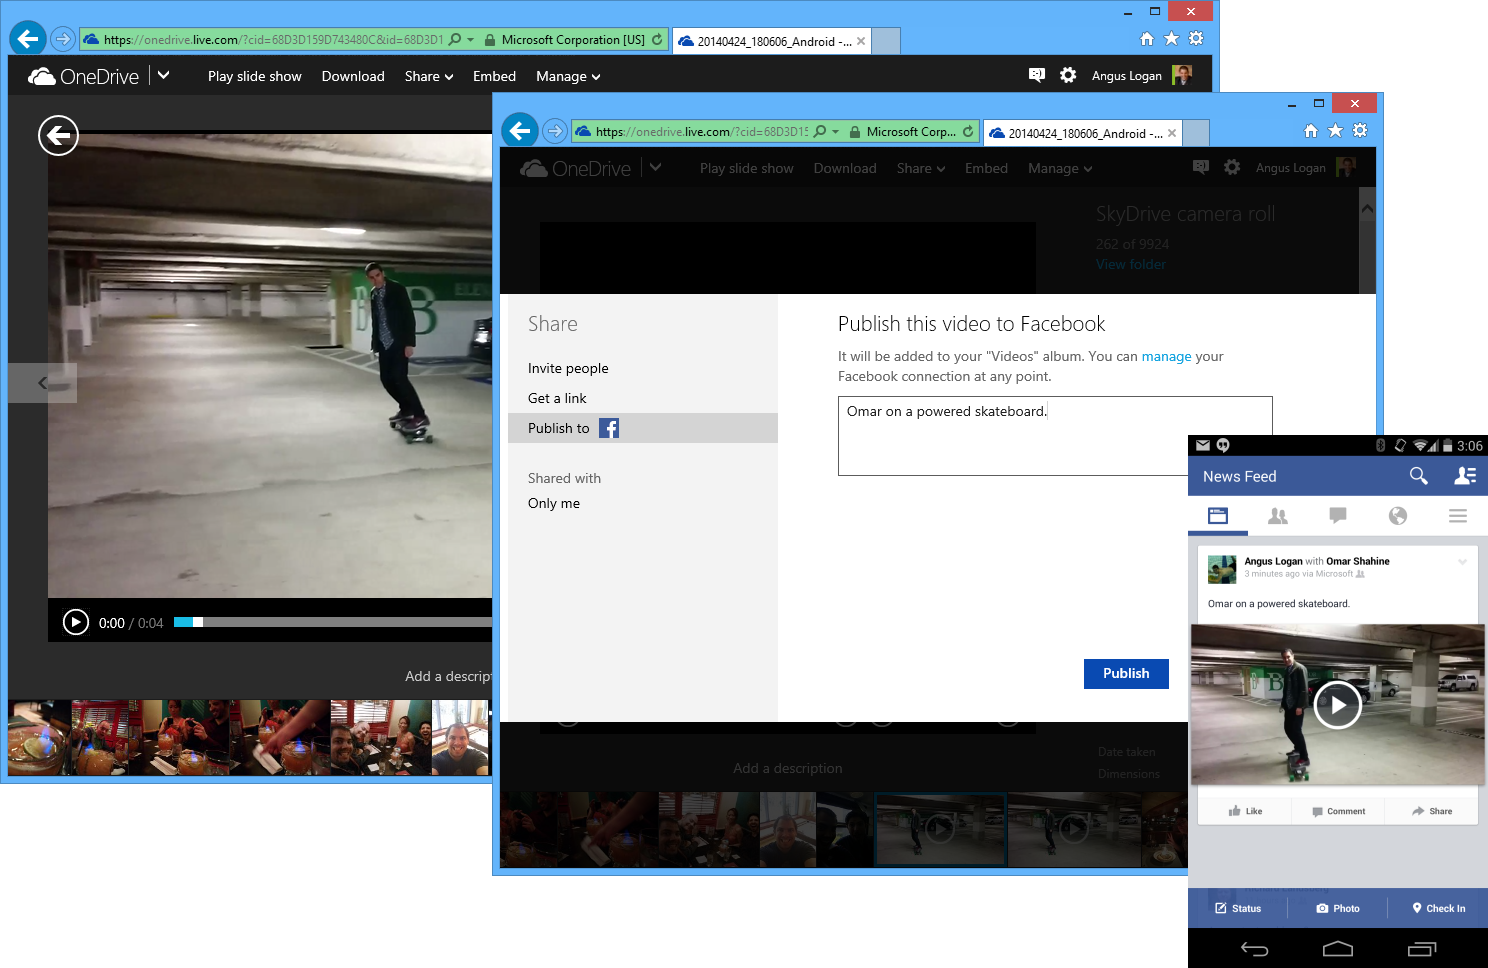 Video Sharing to Facebook